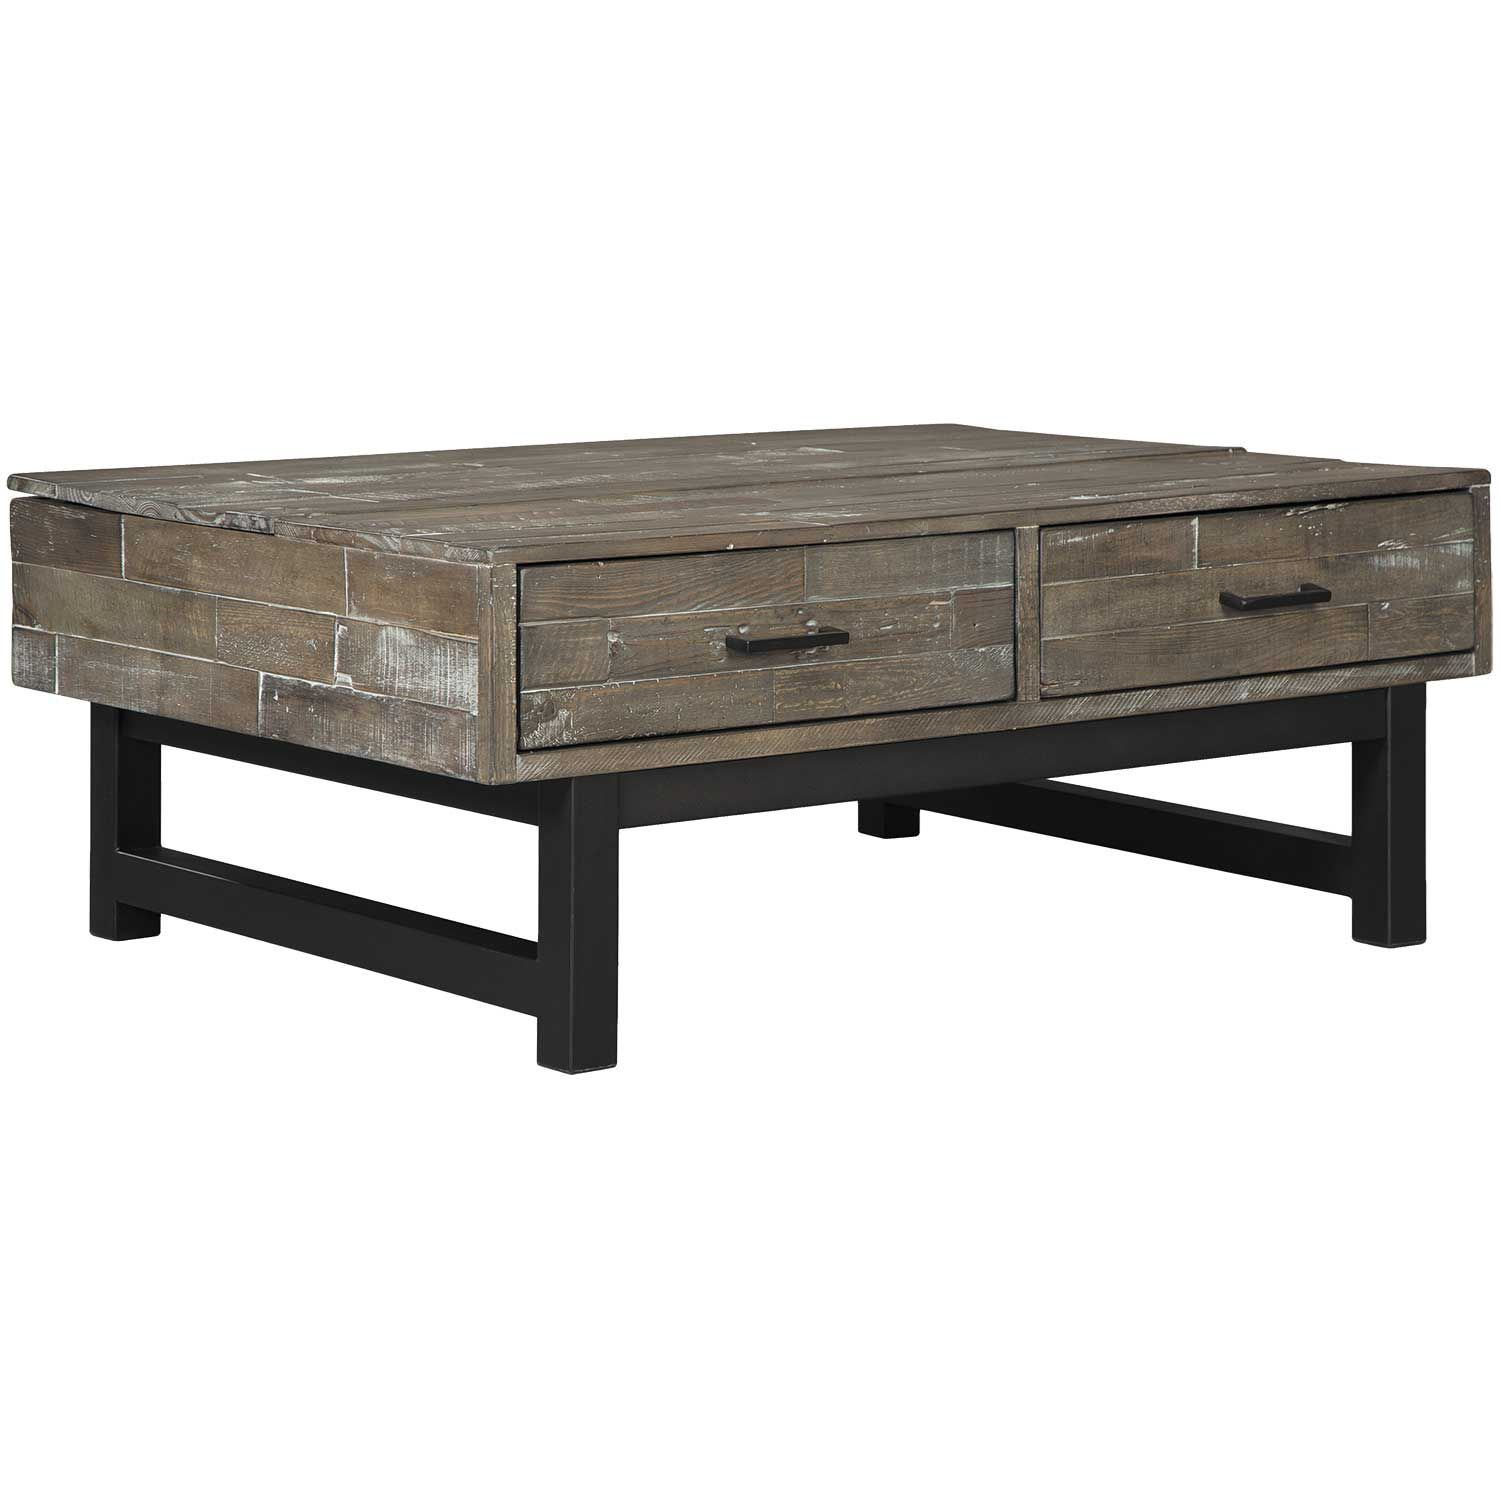 Lift Top Coffee Table.Mondoro Lift Top Cocktail Table